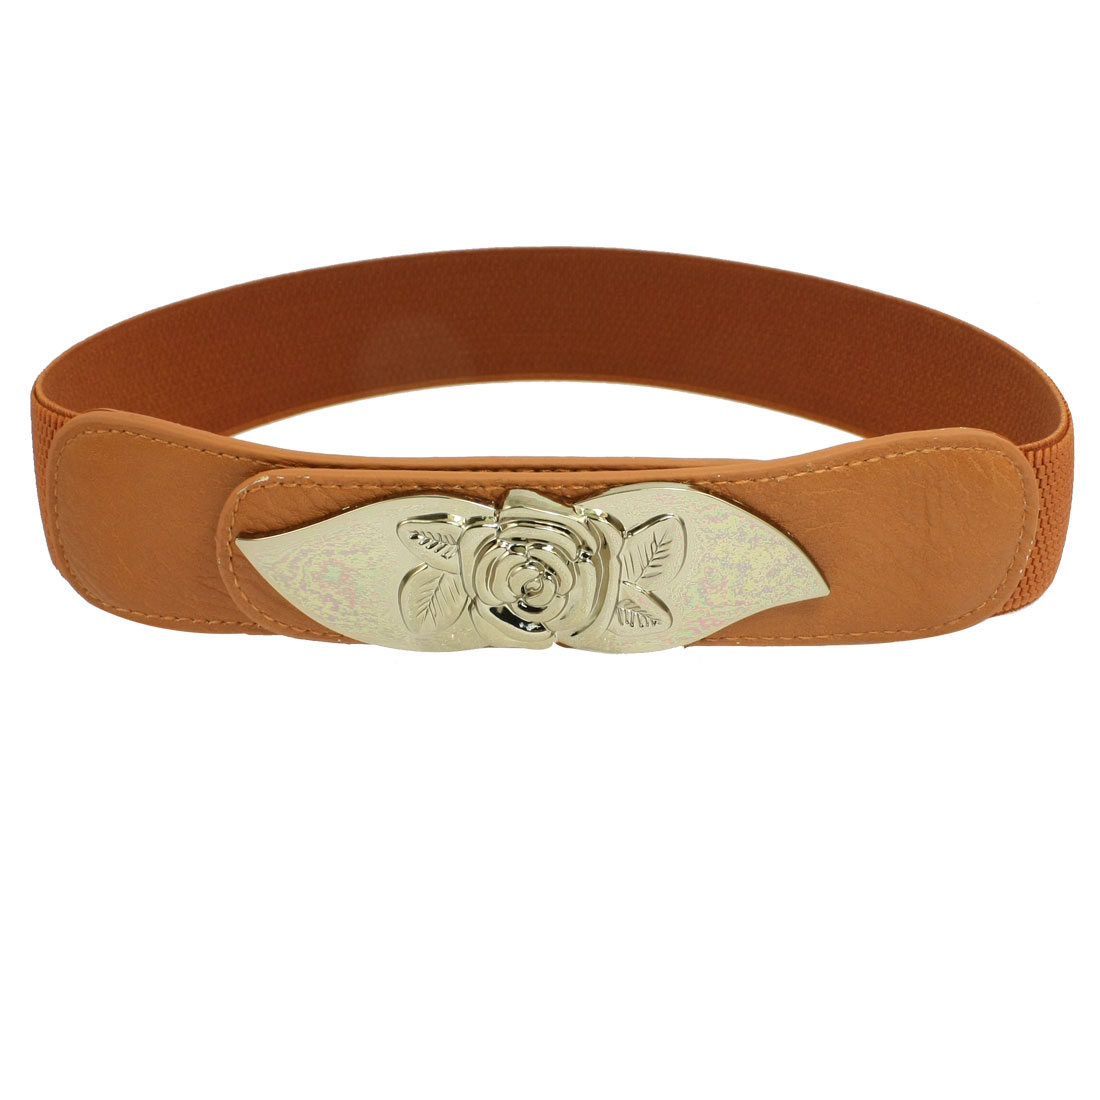 Flower Press Buckle 3.5cm Wide Faux Leather Front Stretchy Waist Belt Brown